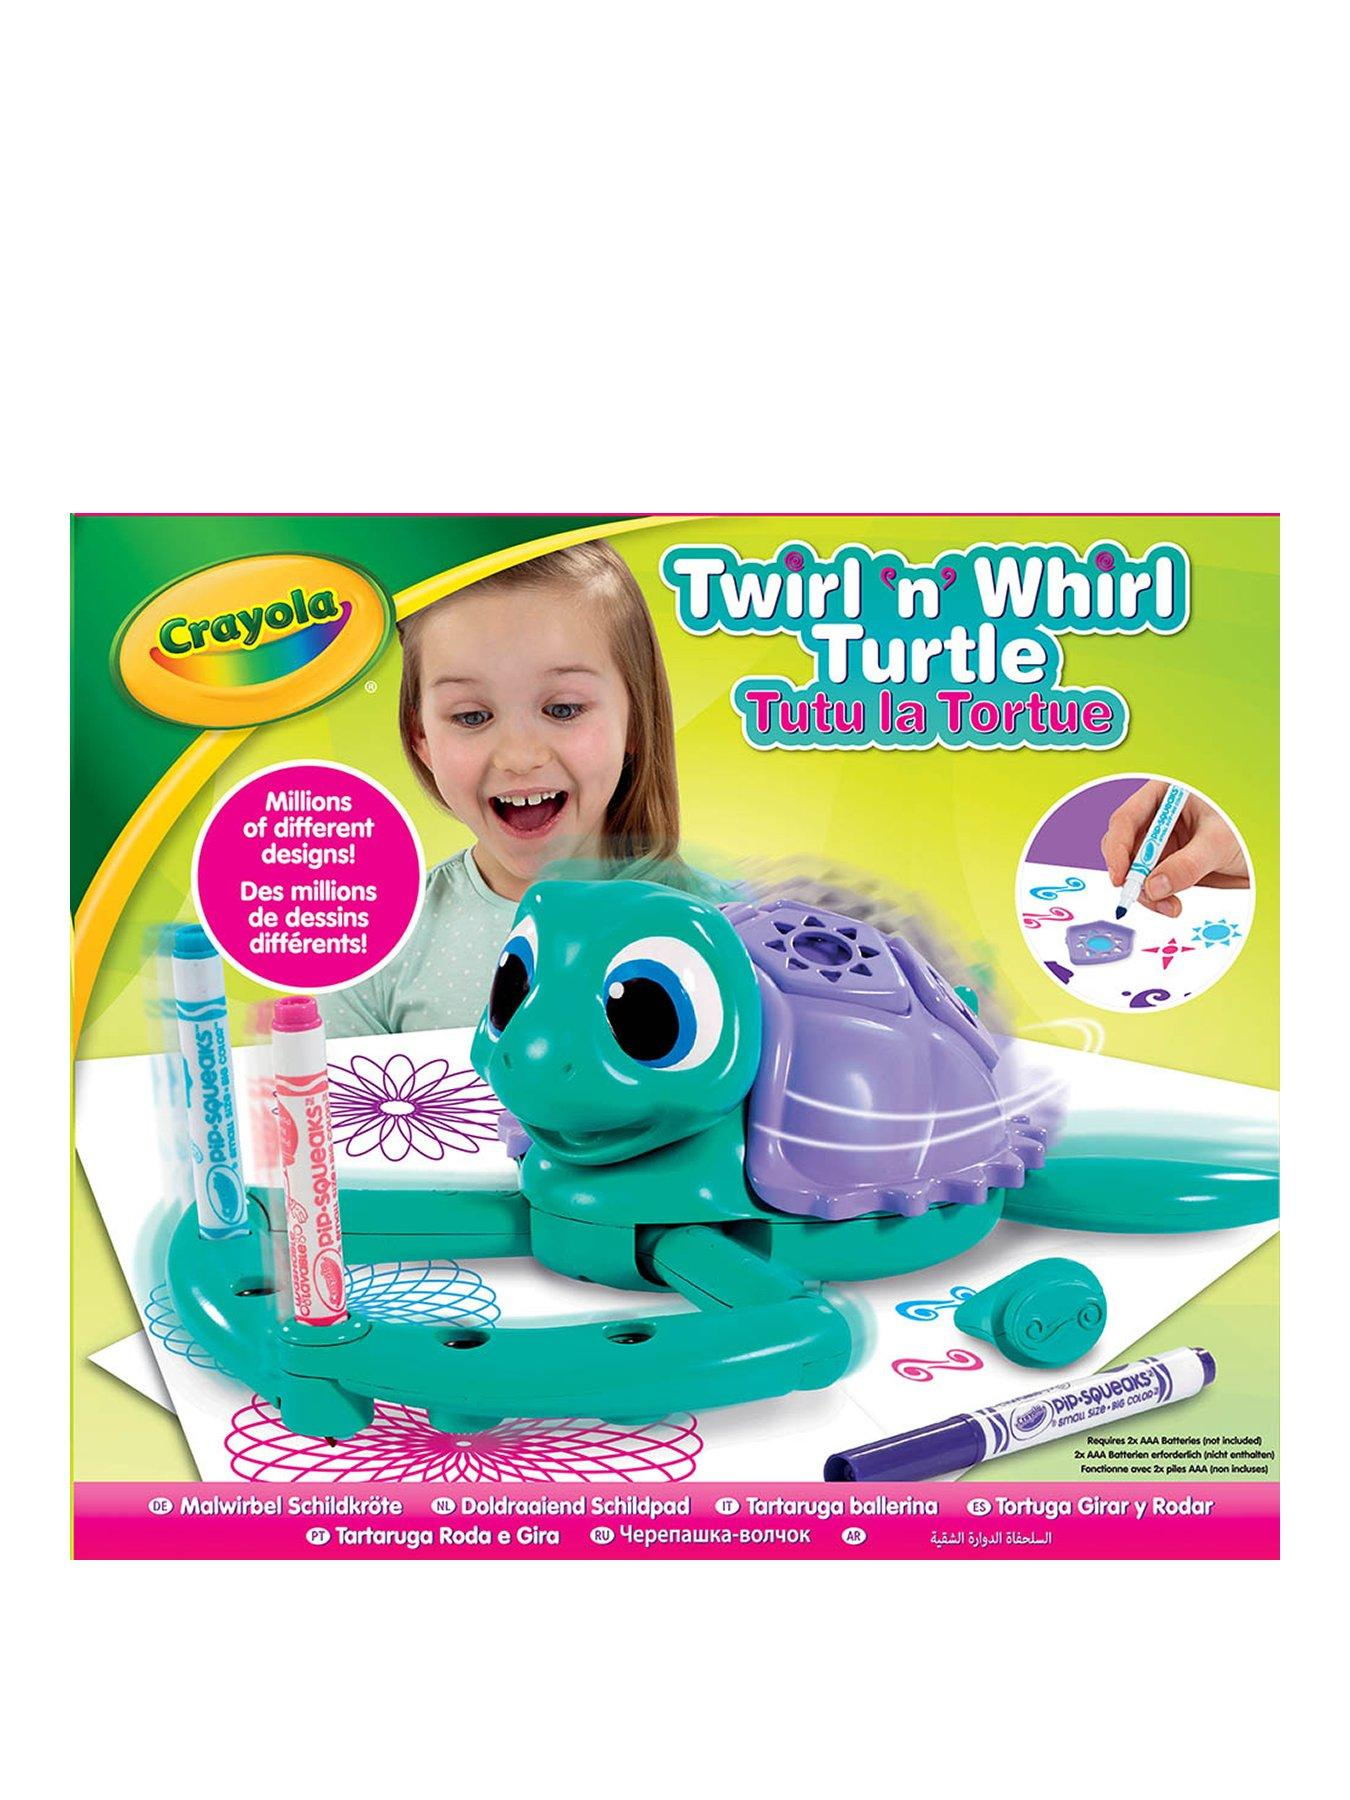 Compare prices for Crayola Twirl N Whirl Turtle